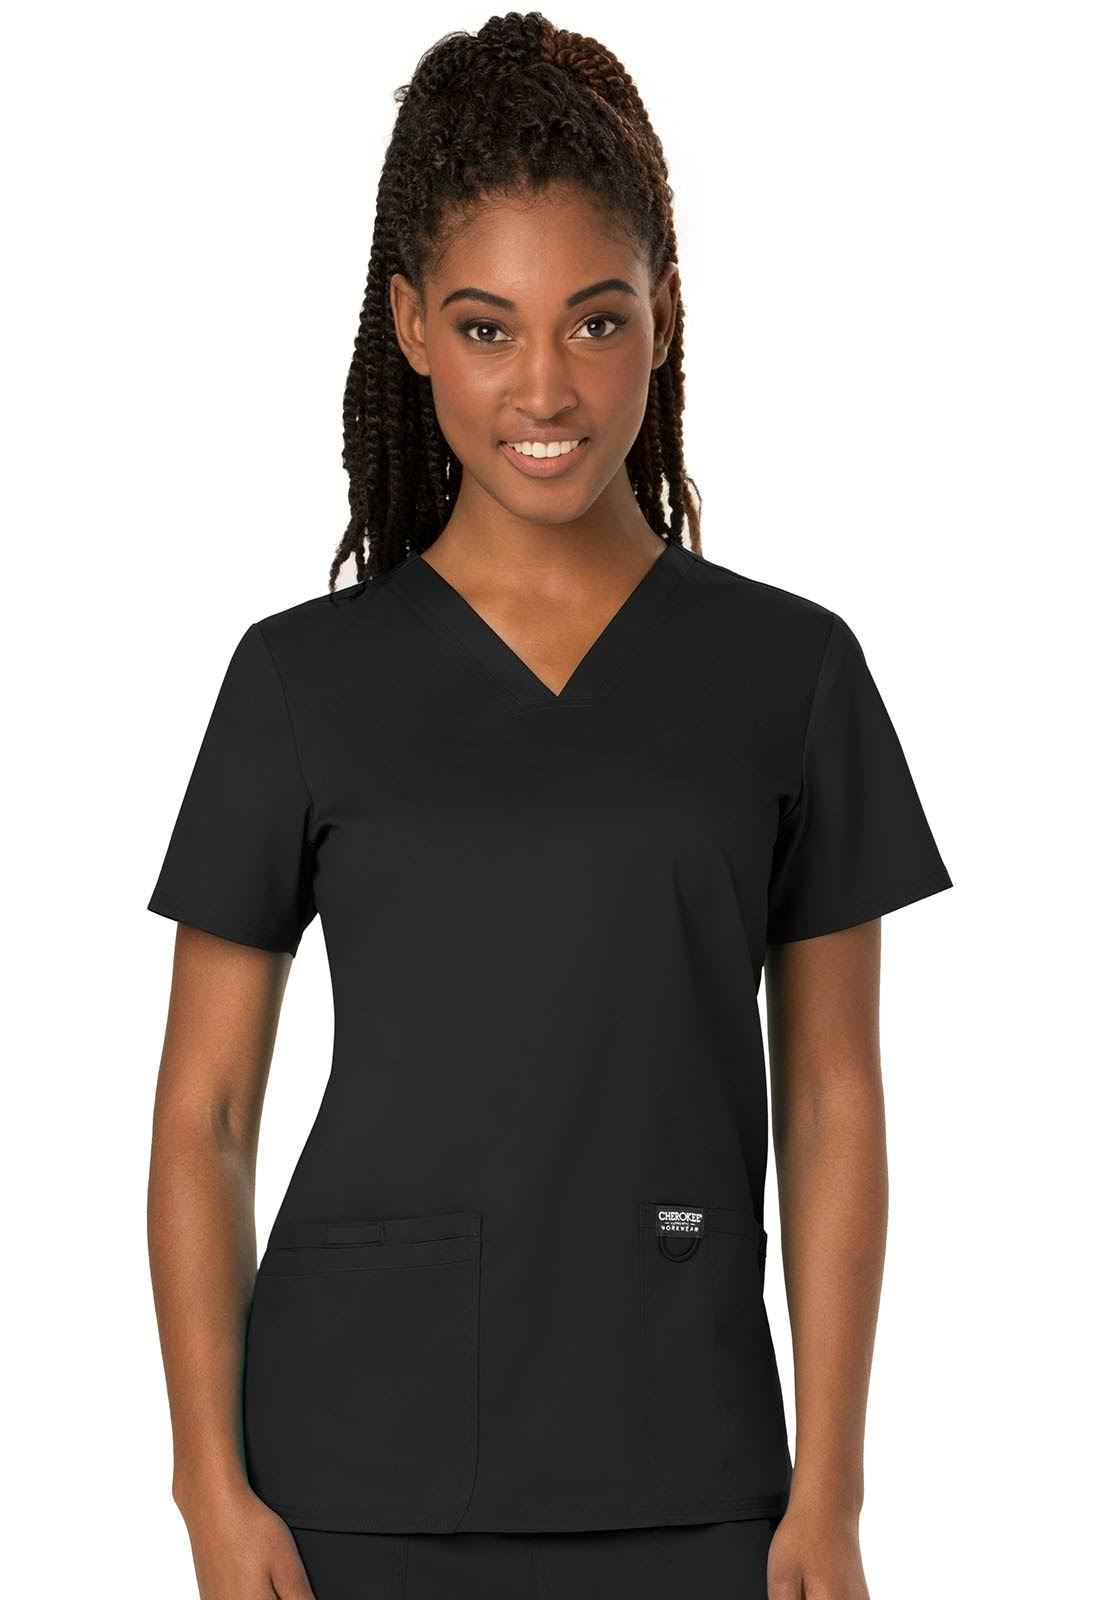 Cherokee Workwear Revolution V-Neck Scrub Top - L - Black